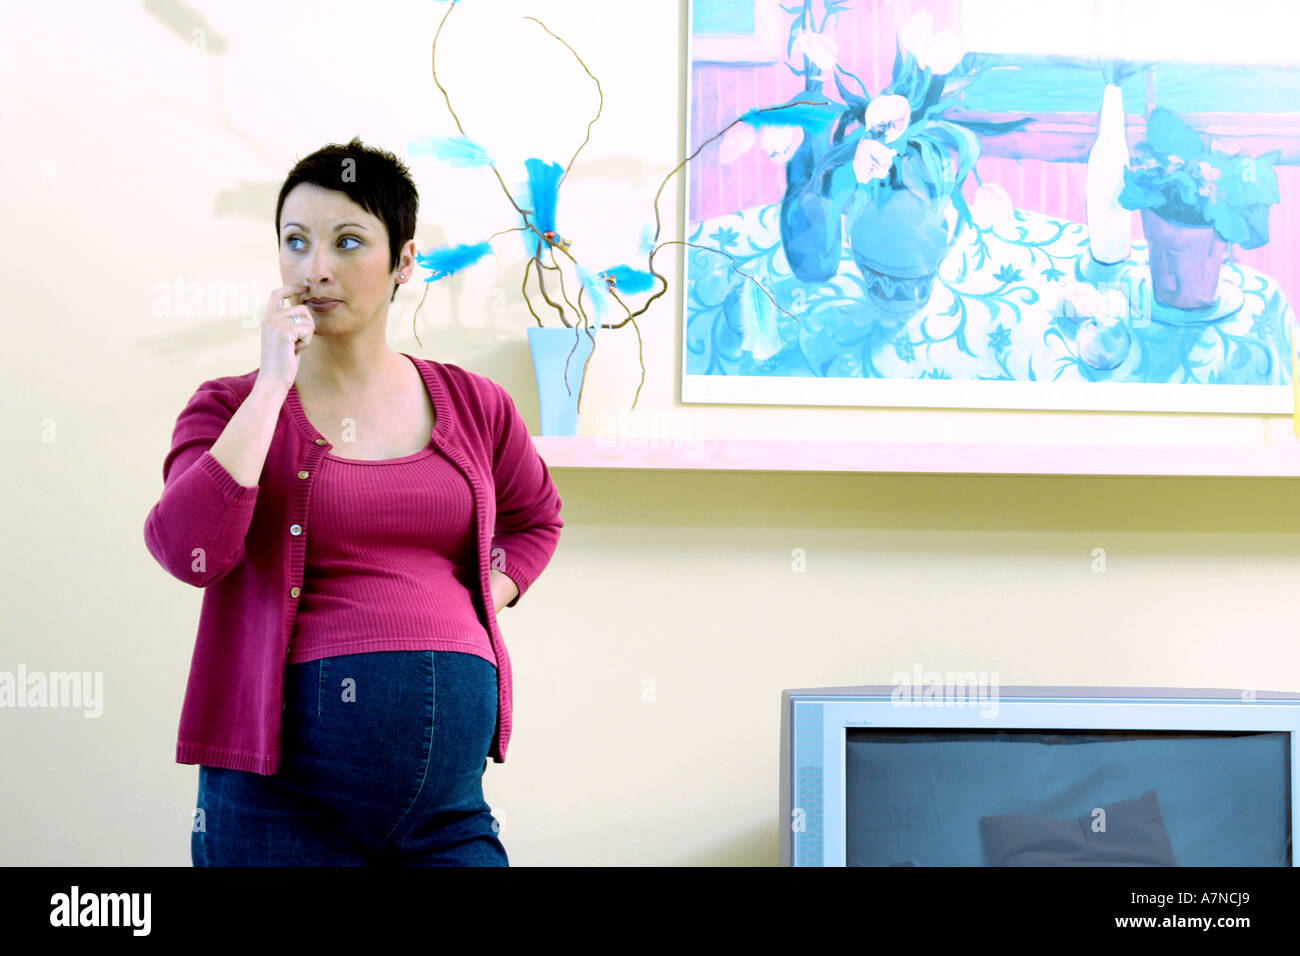 indoor flat room sittingroom woman young 25 30 brunette shirt cardigan stand stomach pregnancy pregnant think wonder wall pai - Stock Image